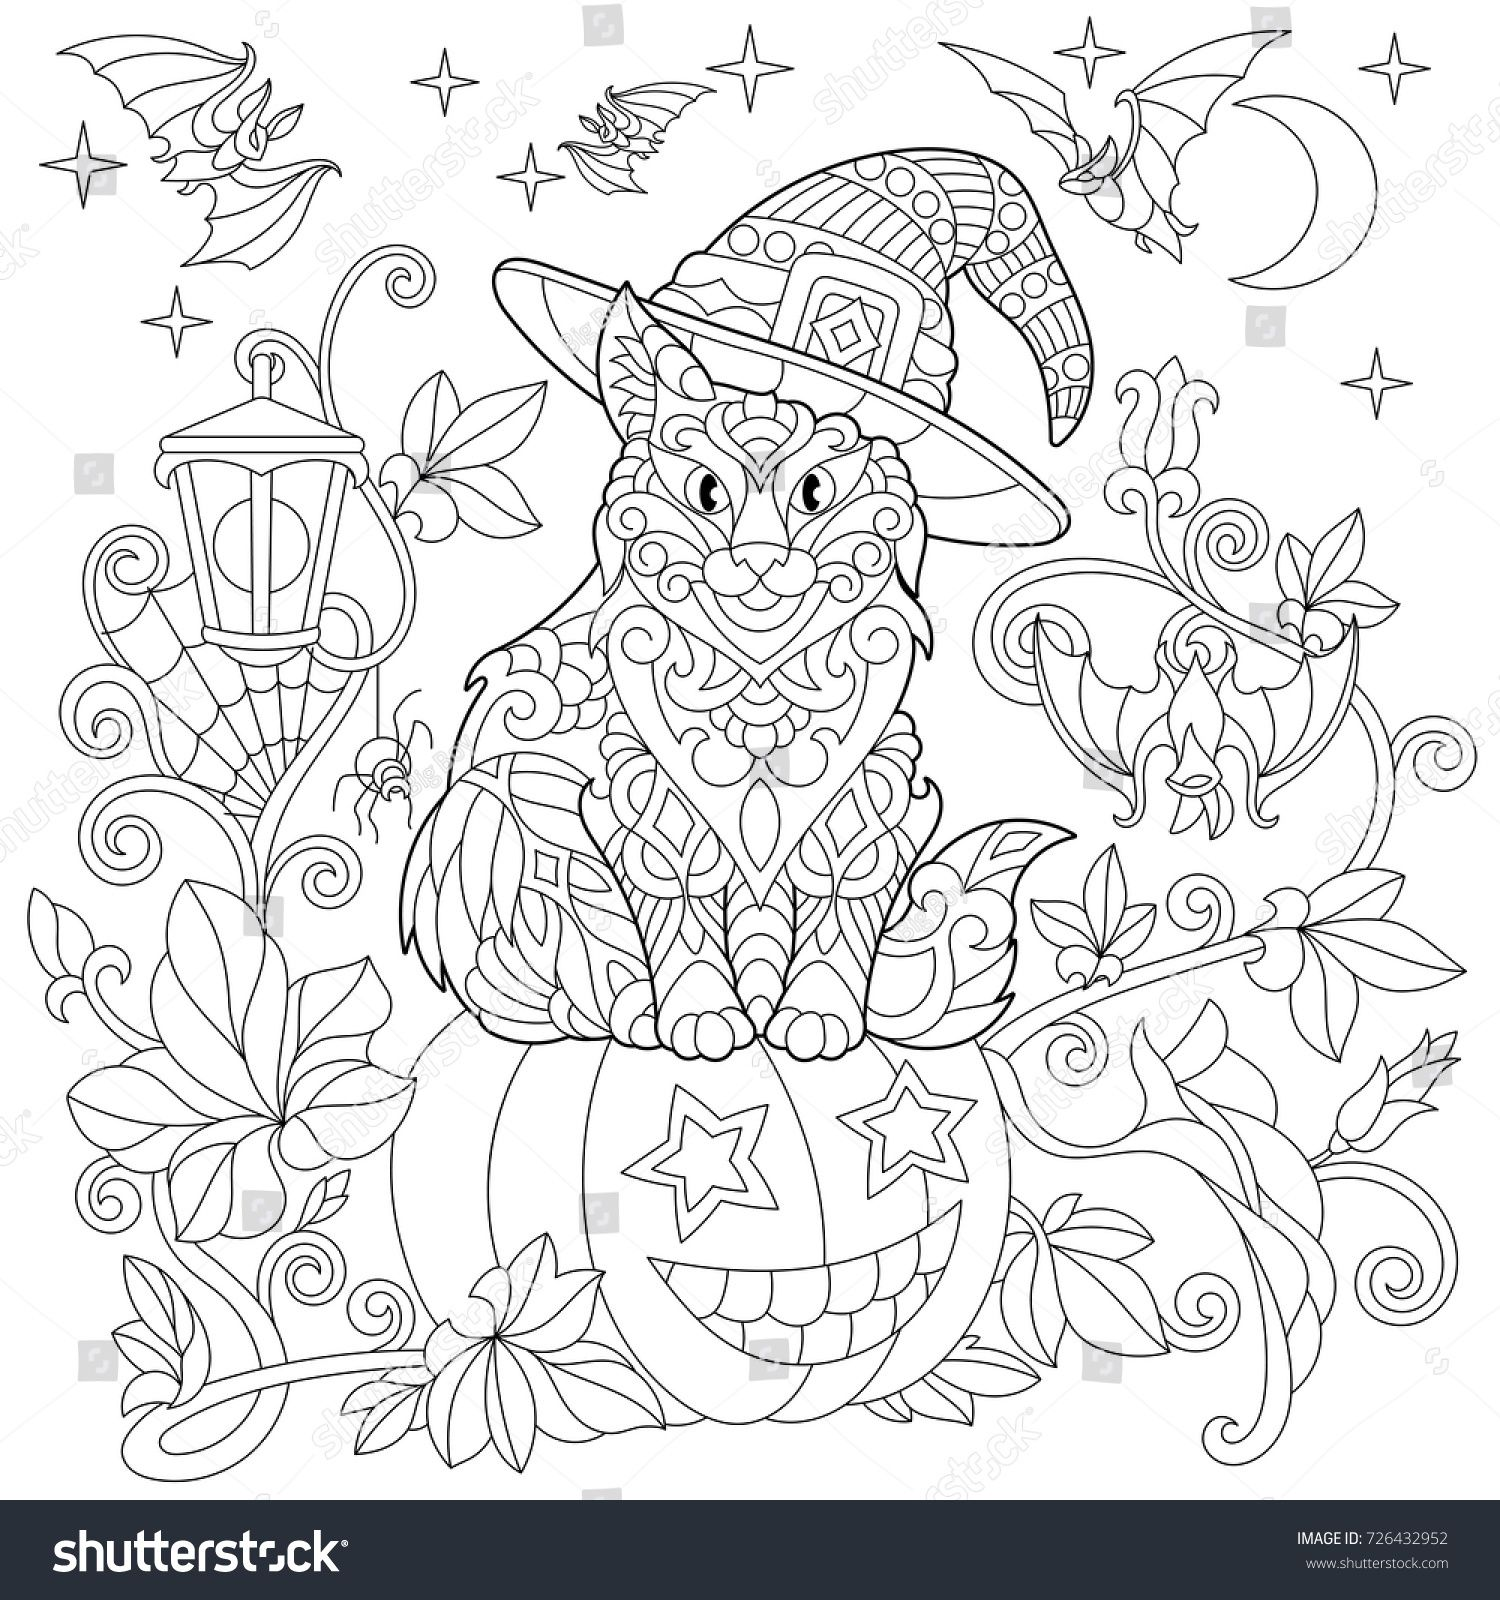 Halloween Coloring Page Cat In A Hat, Halloween Pumpkin